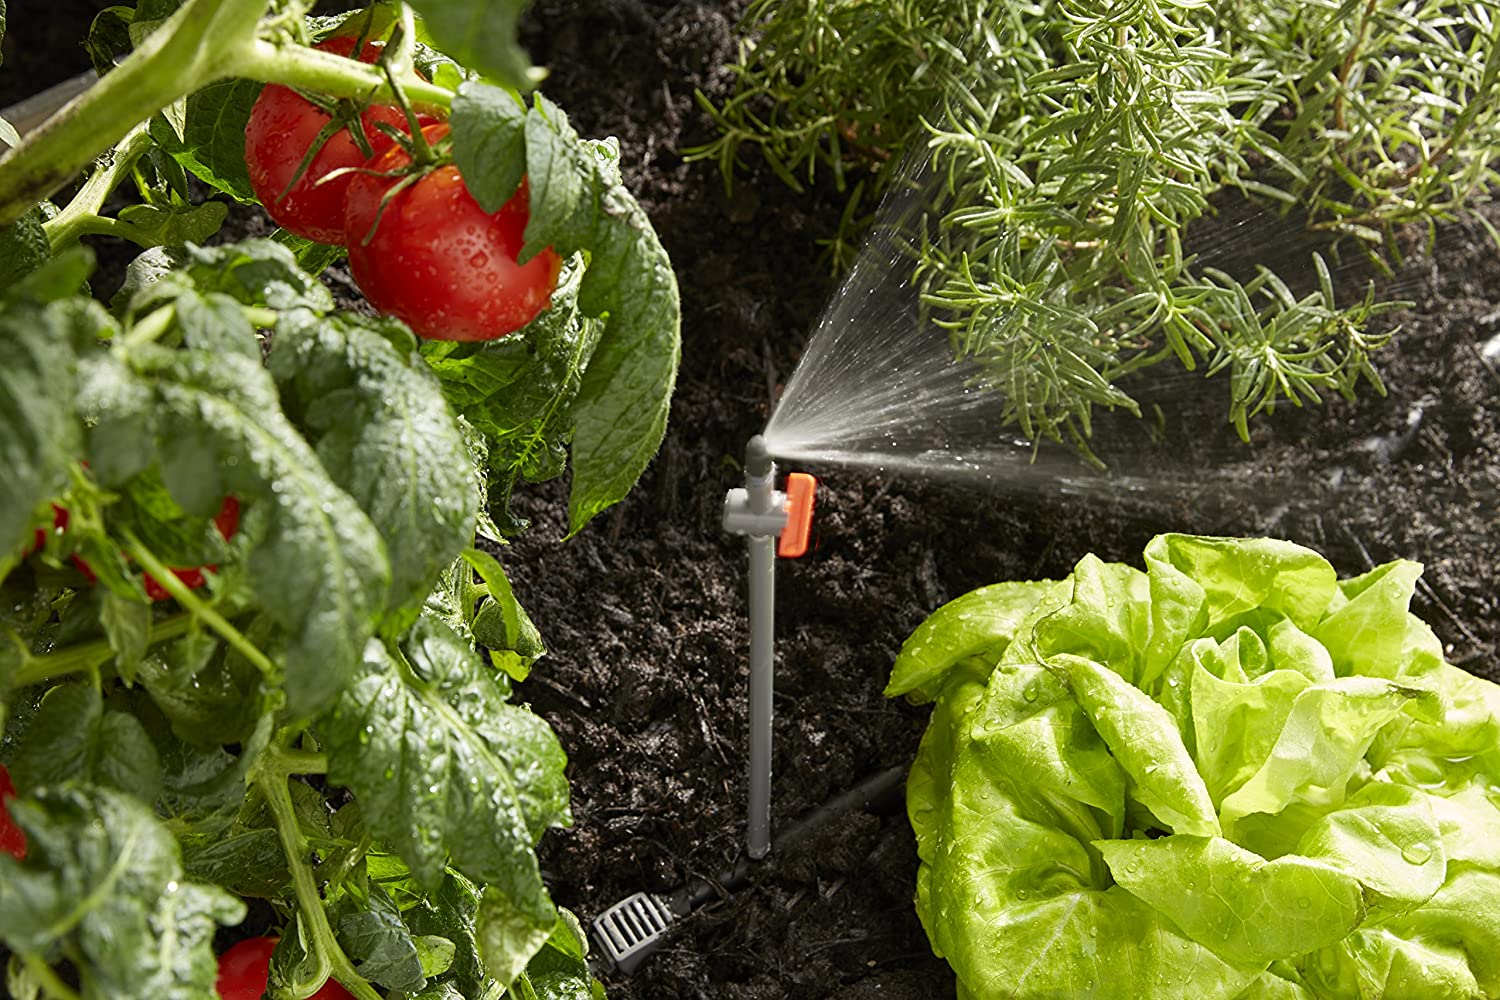 Scotts All-in-One Garden Watering Kit Reduces Water Waste Flexible Tubing /& Quick Connect Technology Makes Watering Easier /& More Versatile Easy Set Up for Season Long Precision Watering